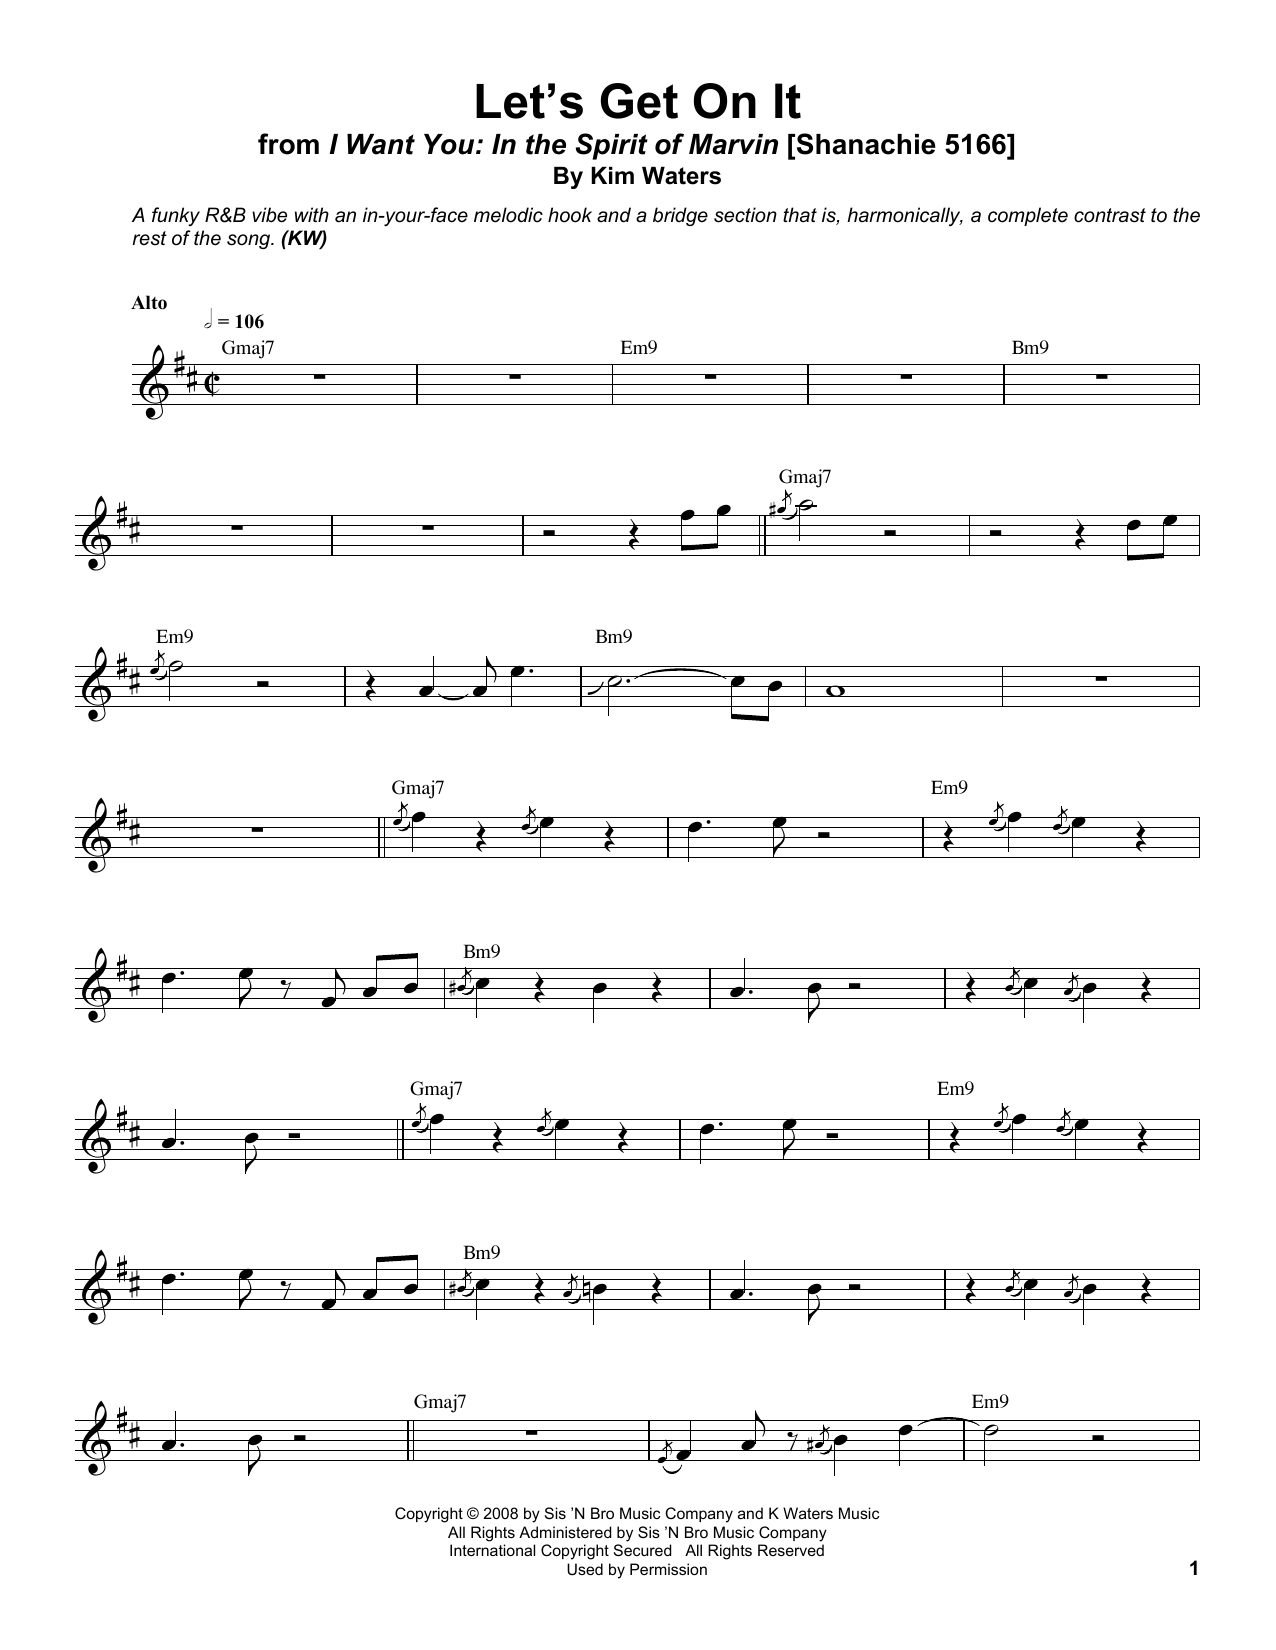 Let's Get On It Sheet Music